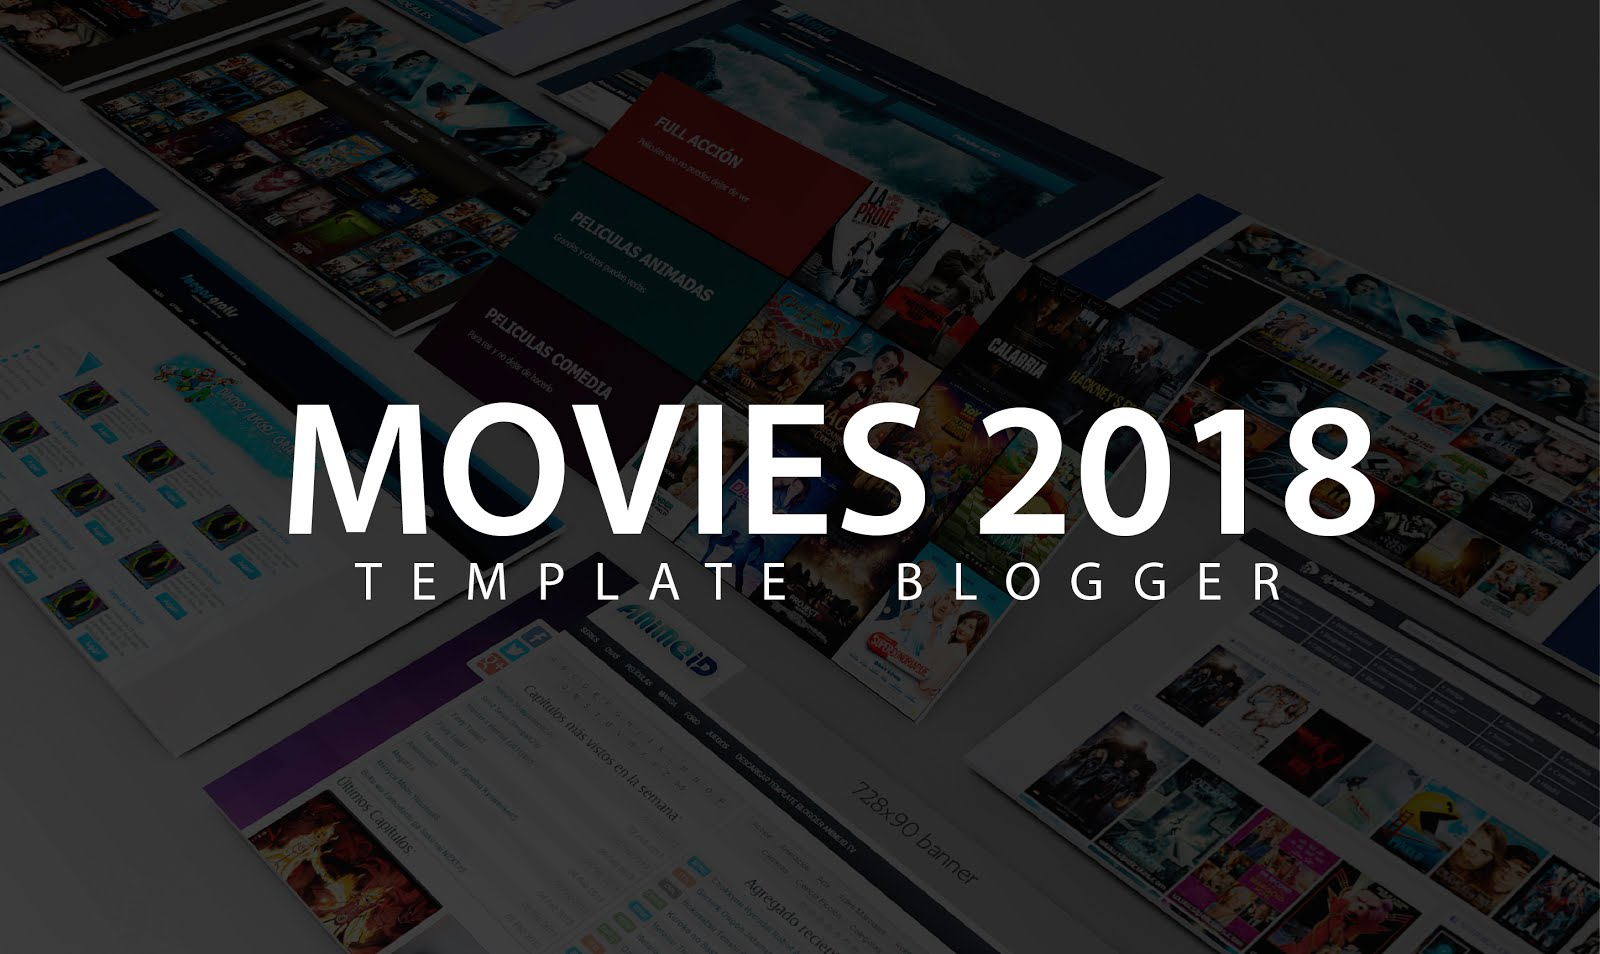 Template Blogger Movies